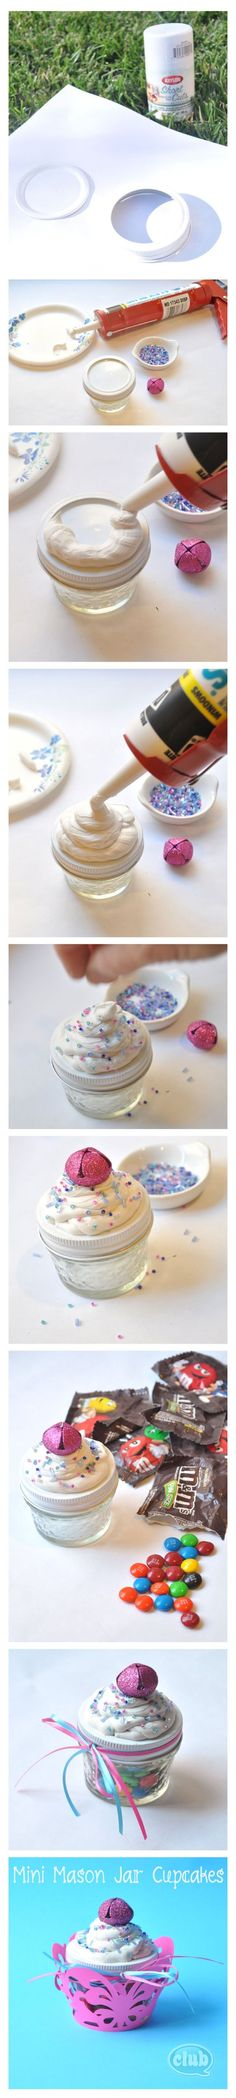 DIY- make a cupcake mason jar!